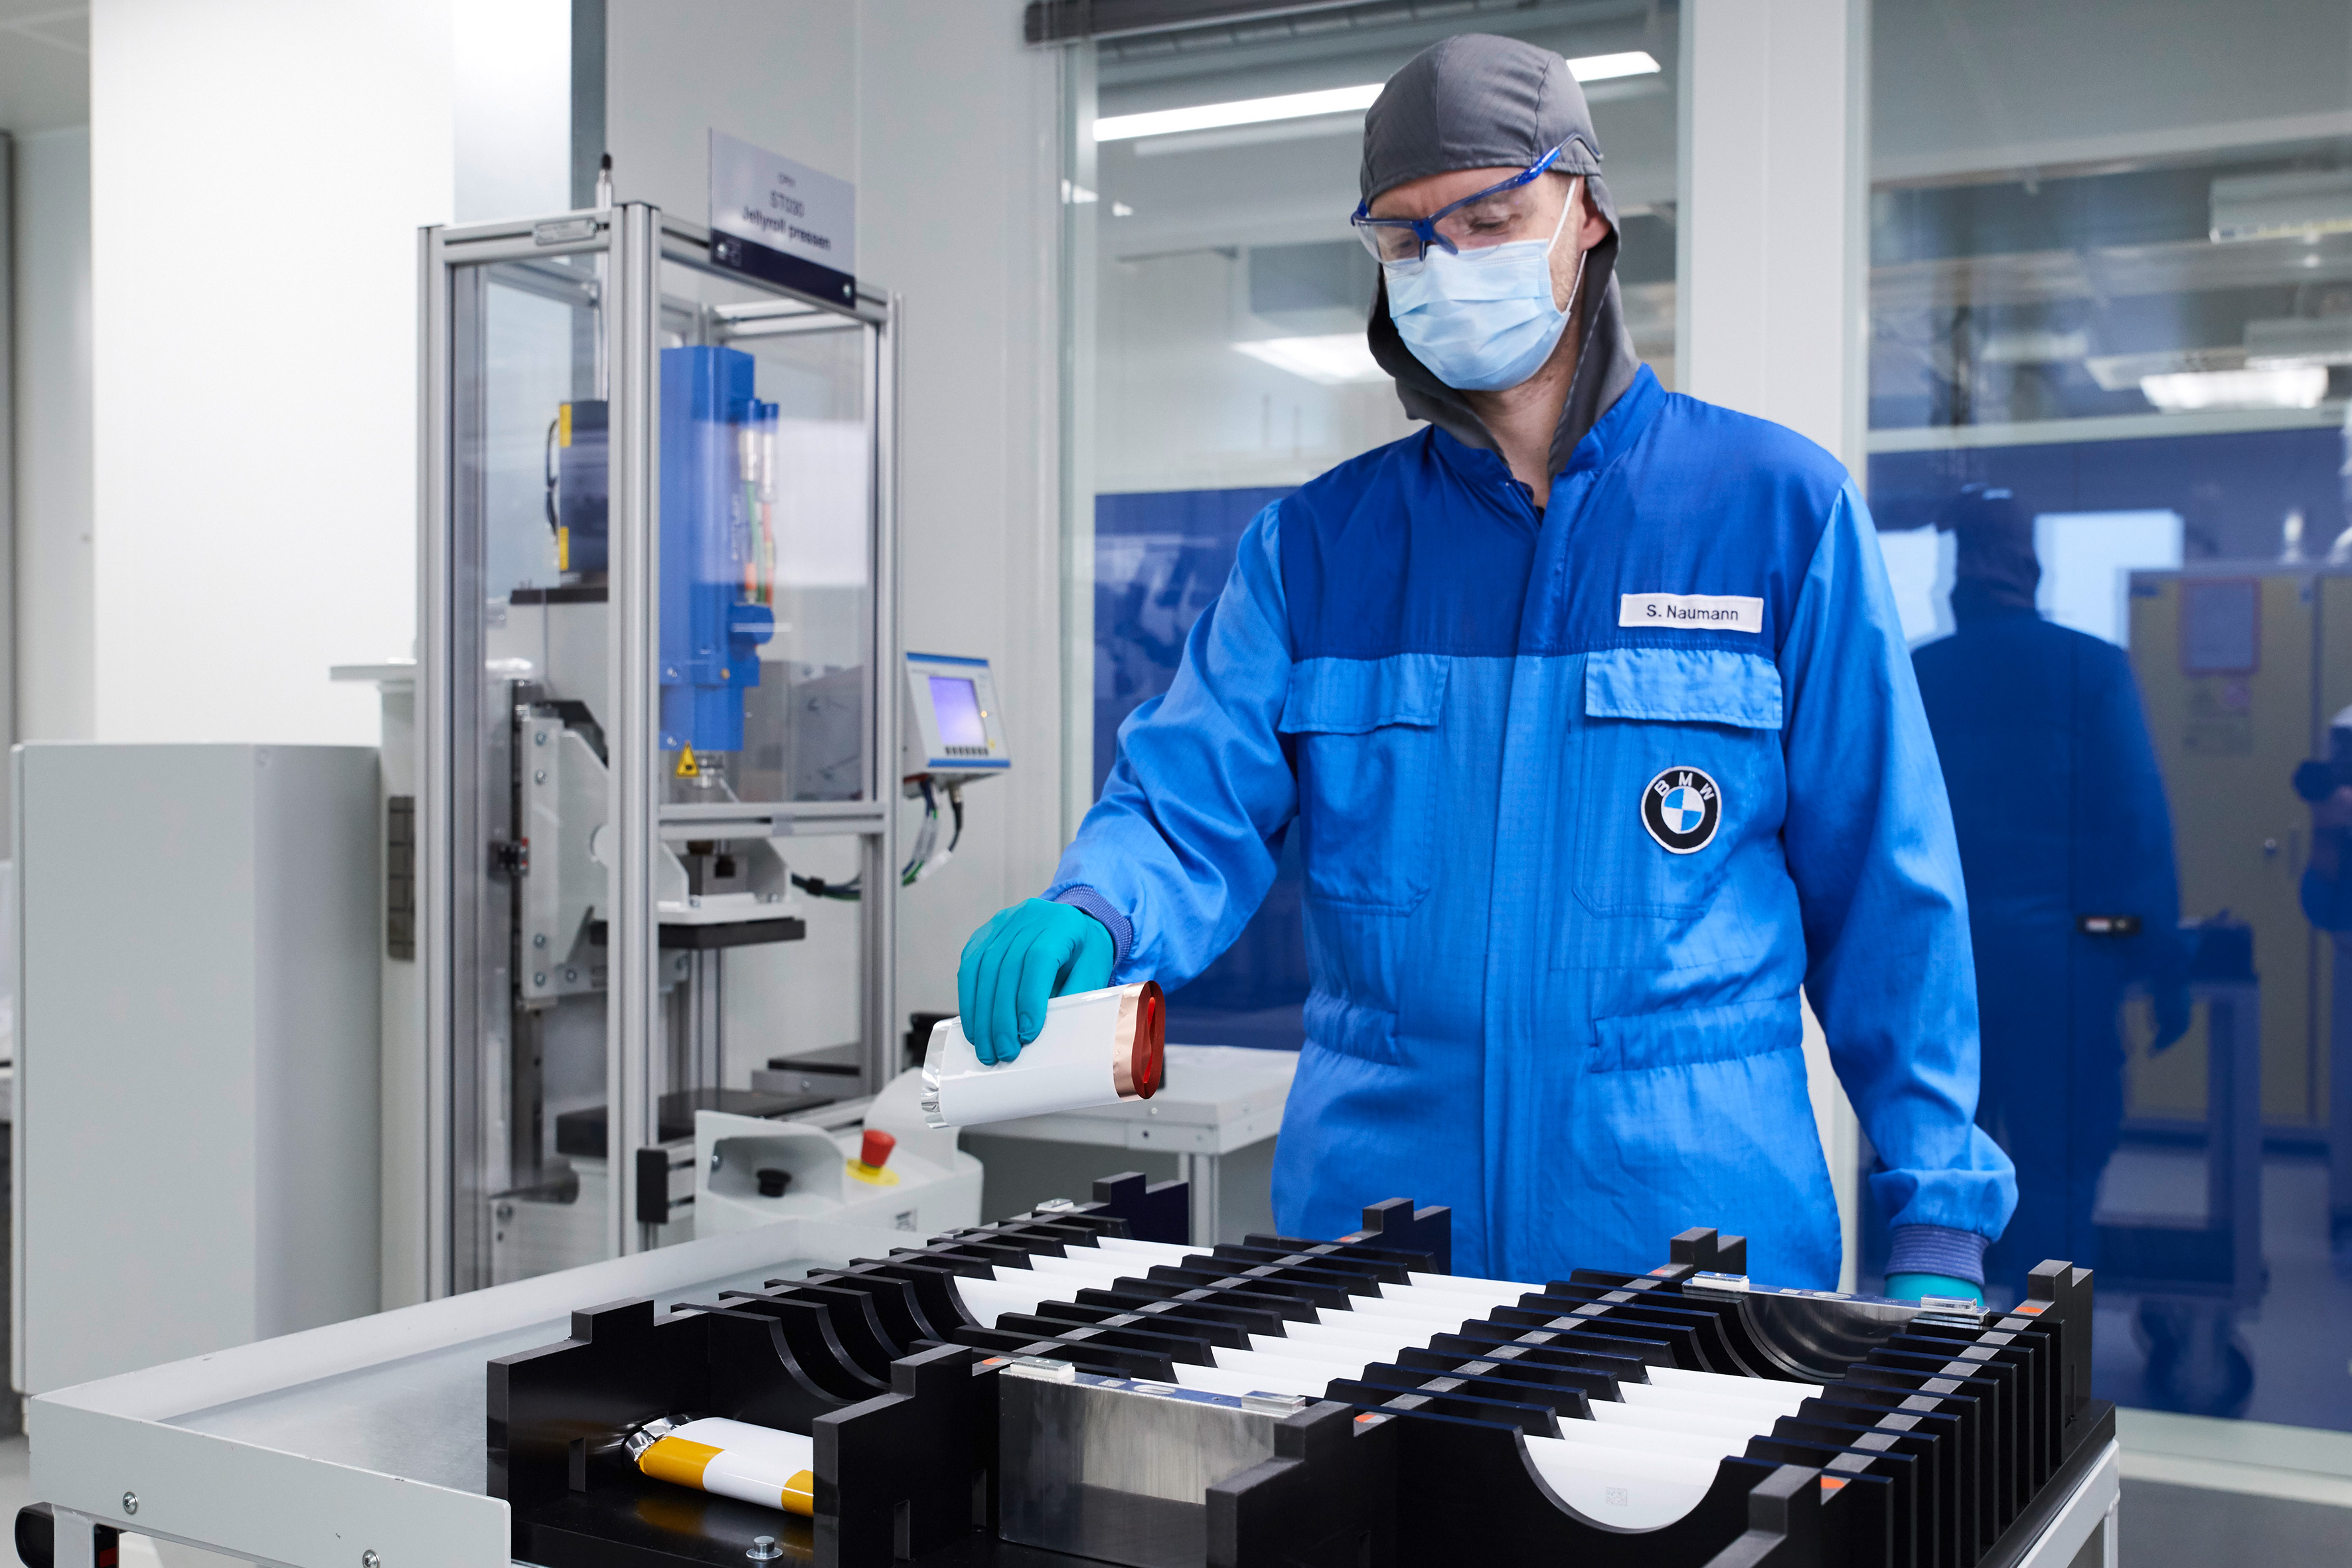 Bmw Invest 240 Million To Bring Electric Car Range 430 Miles Future Batteries That Could Power Your Home Techcentral They Released Images Of Their Current Battery Cell Lab